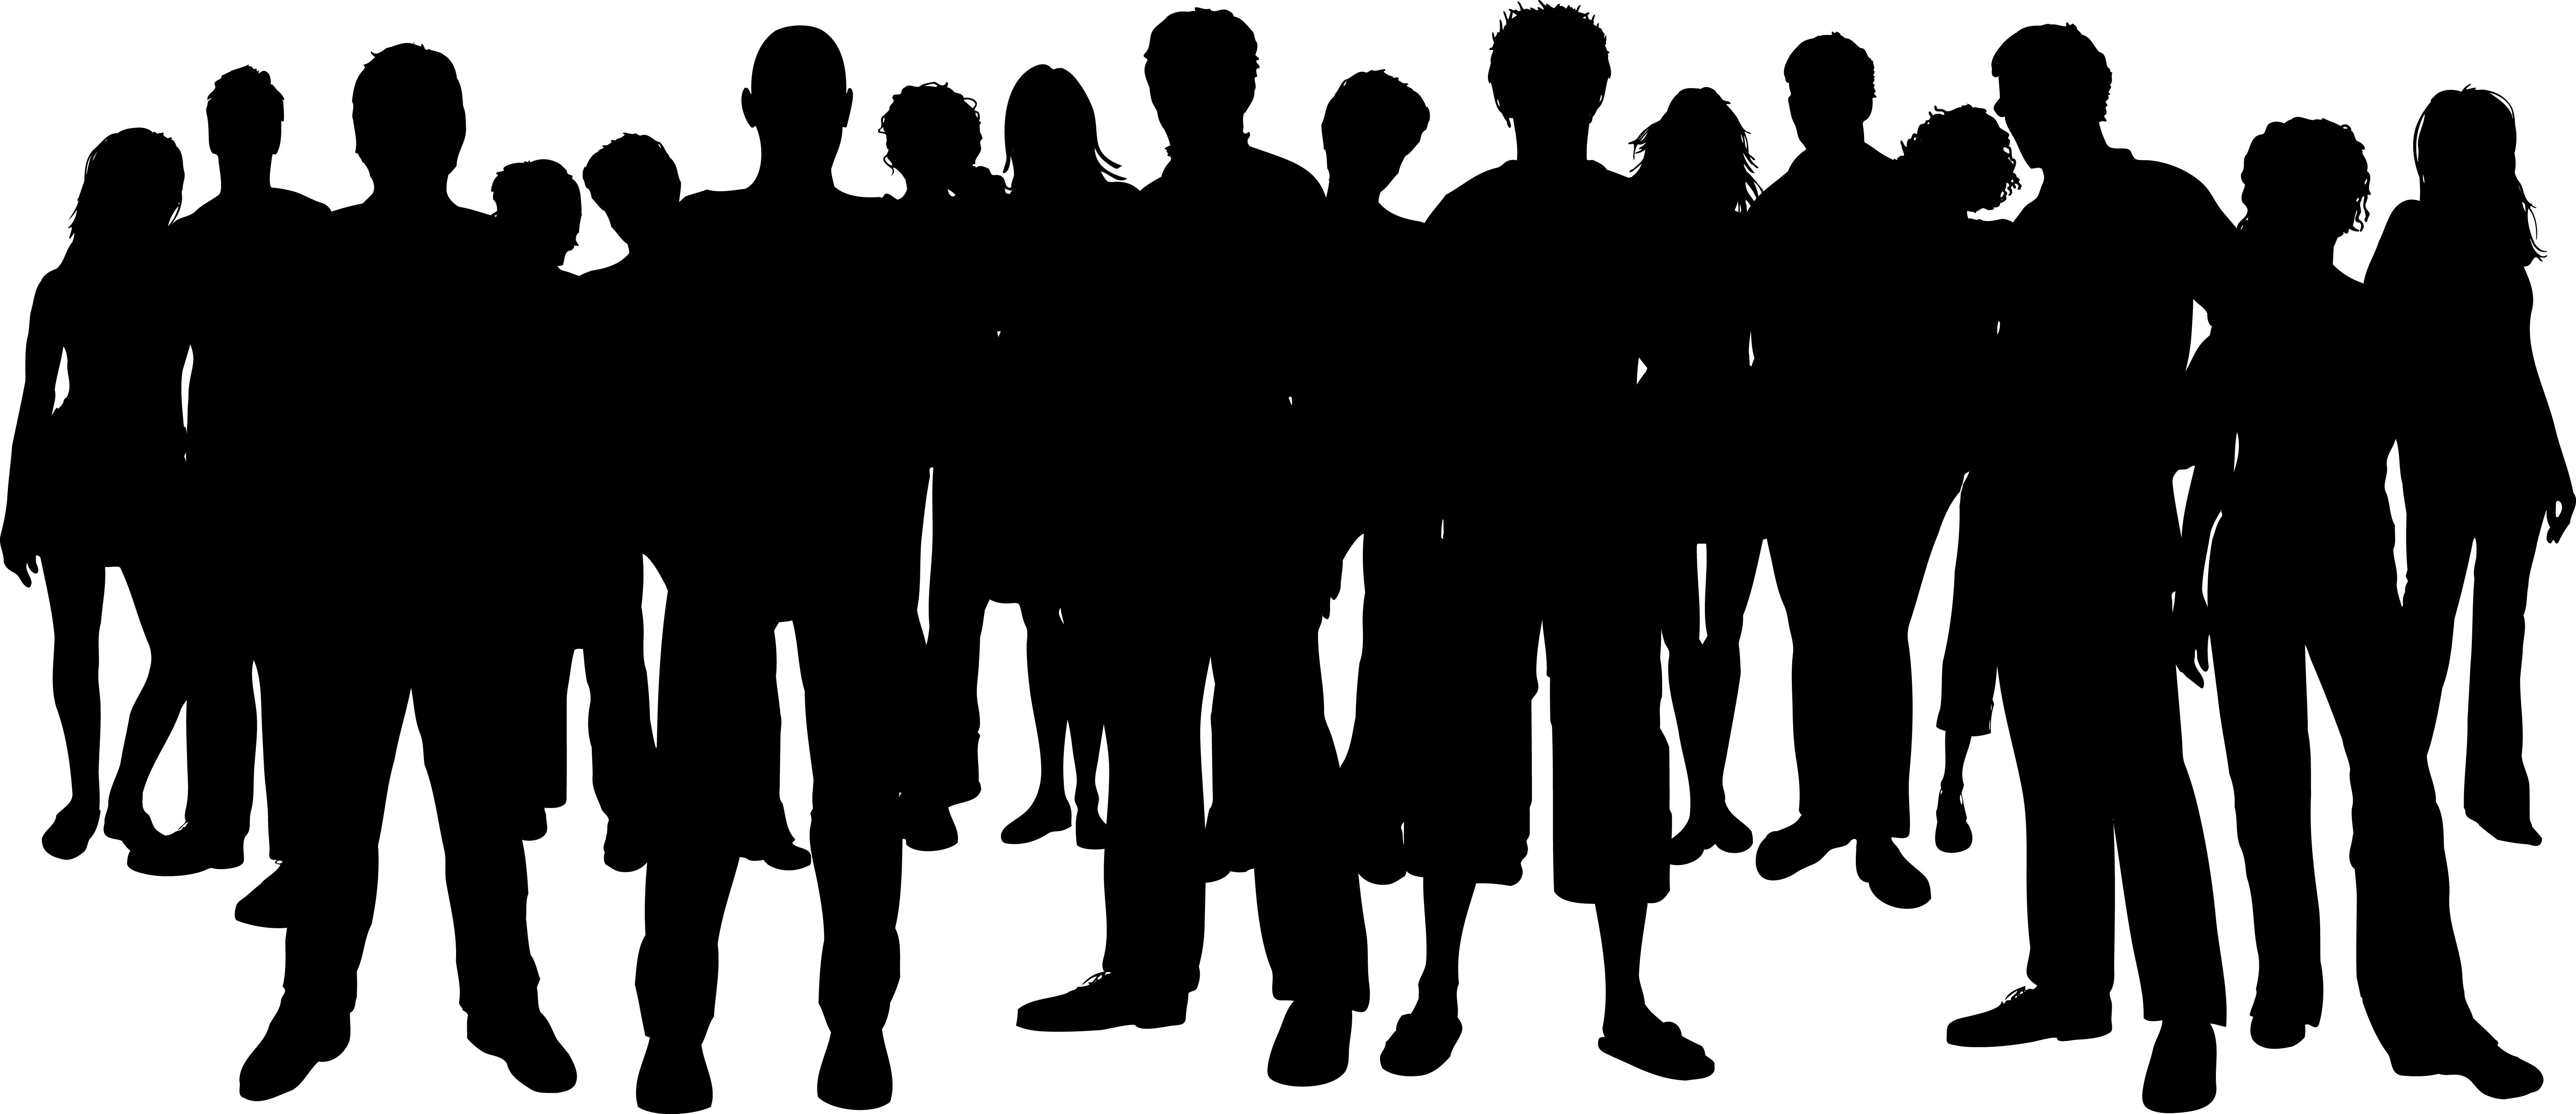 Group of people clipart 7 » Clipart Station.